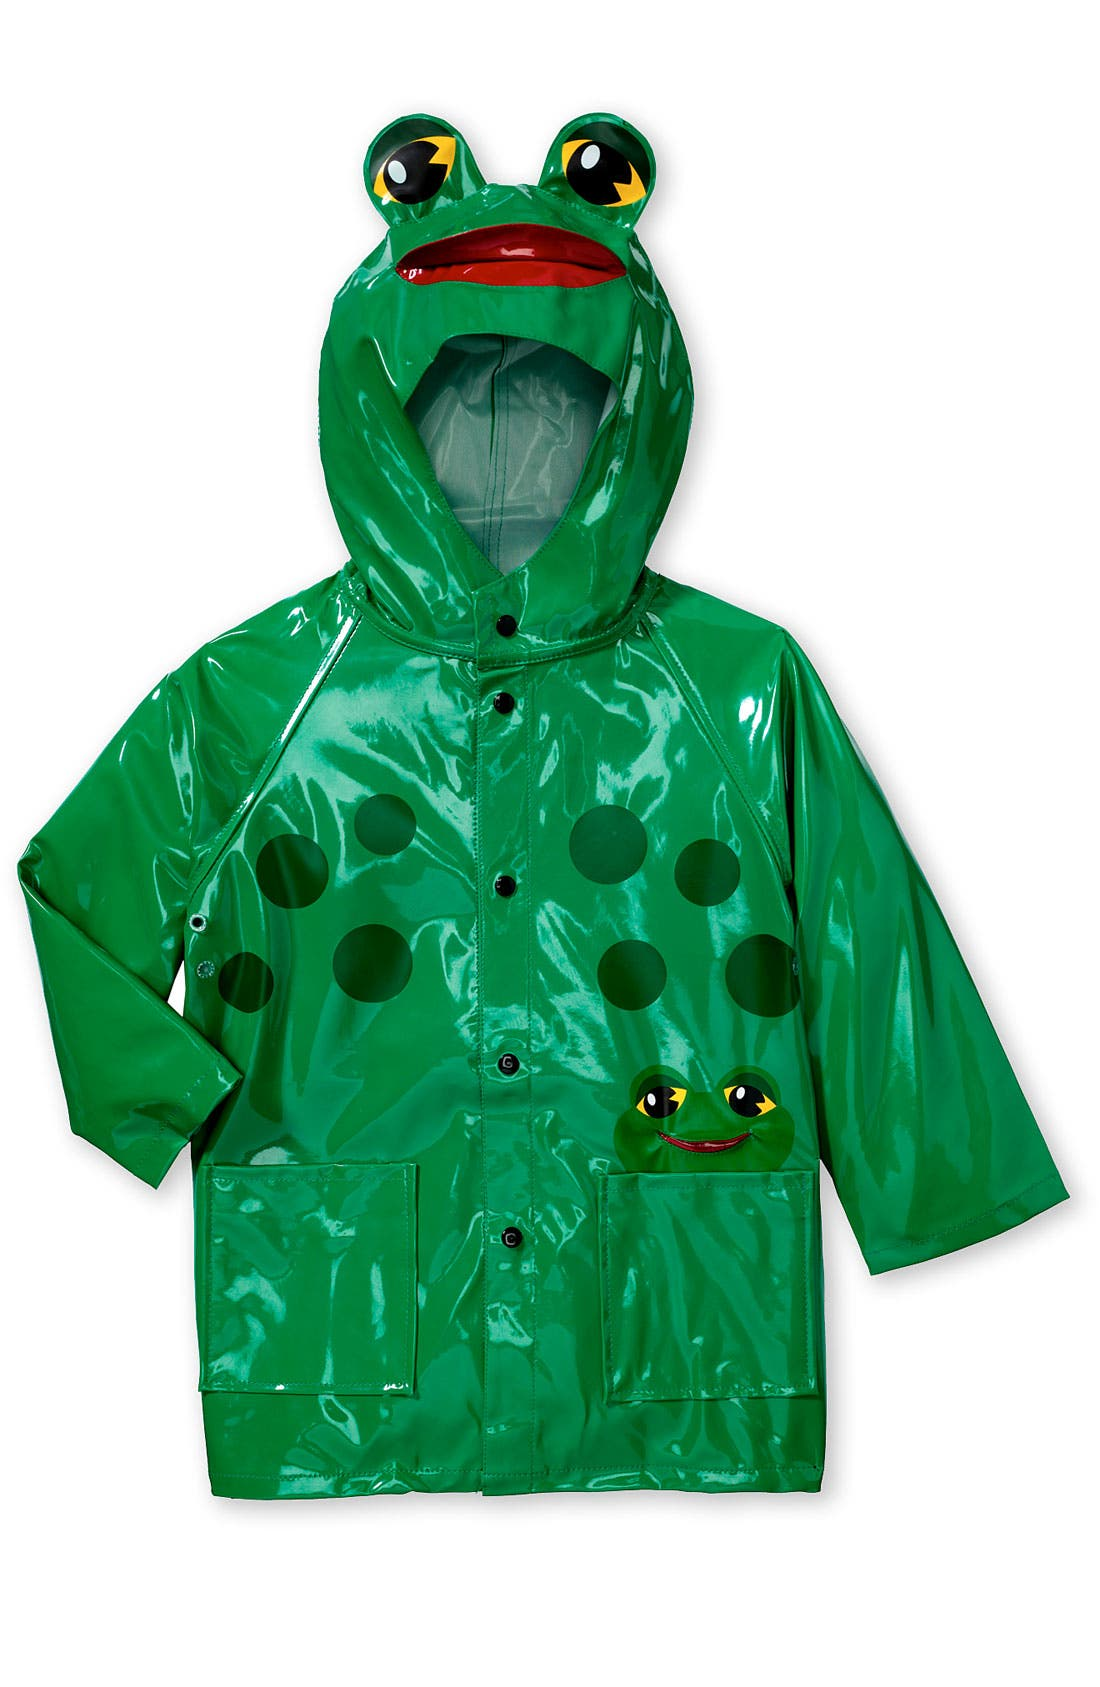 Alternate Image 1 Selected - Western Chief 'Frog' Raincoat (Toddler & Little Kid)